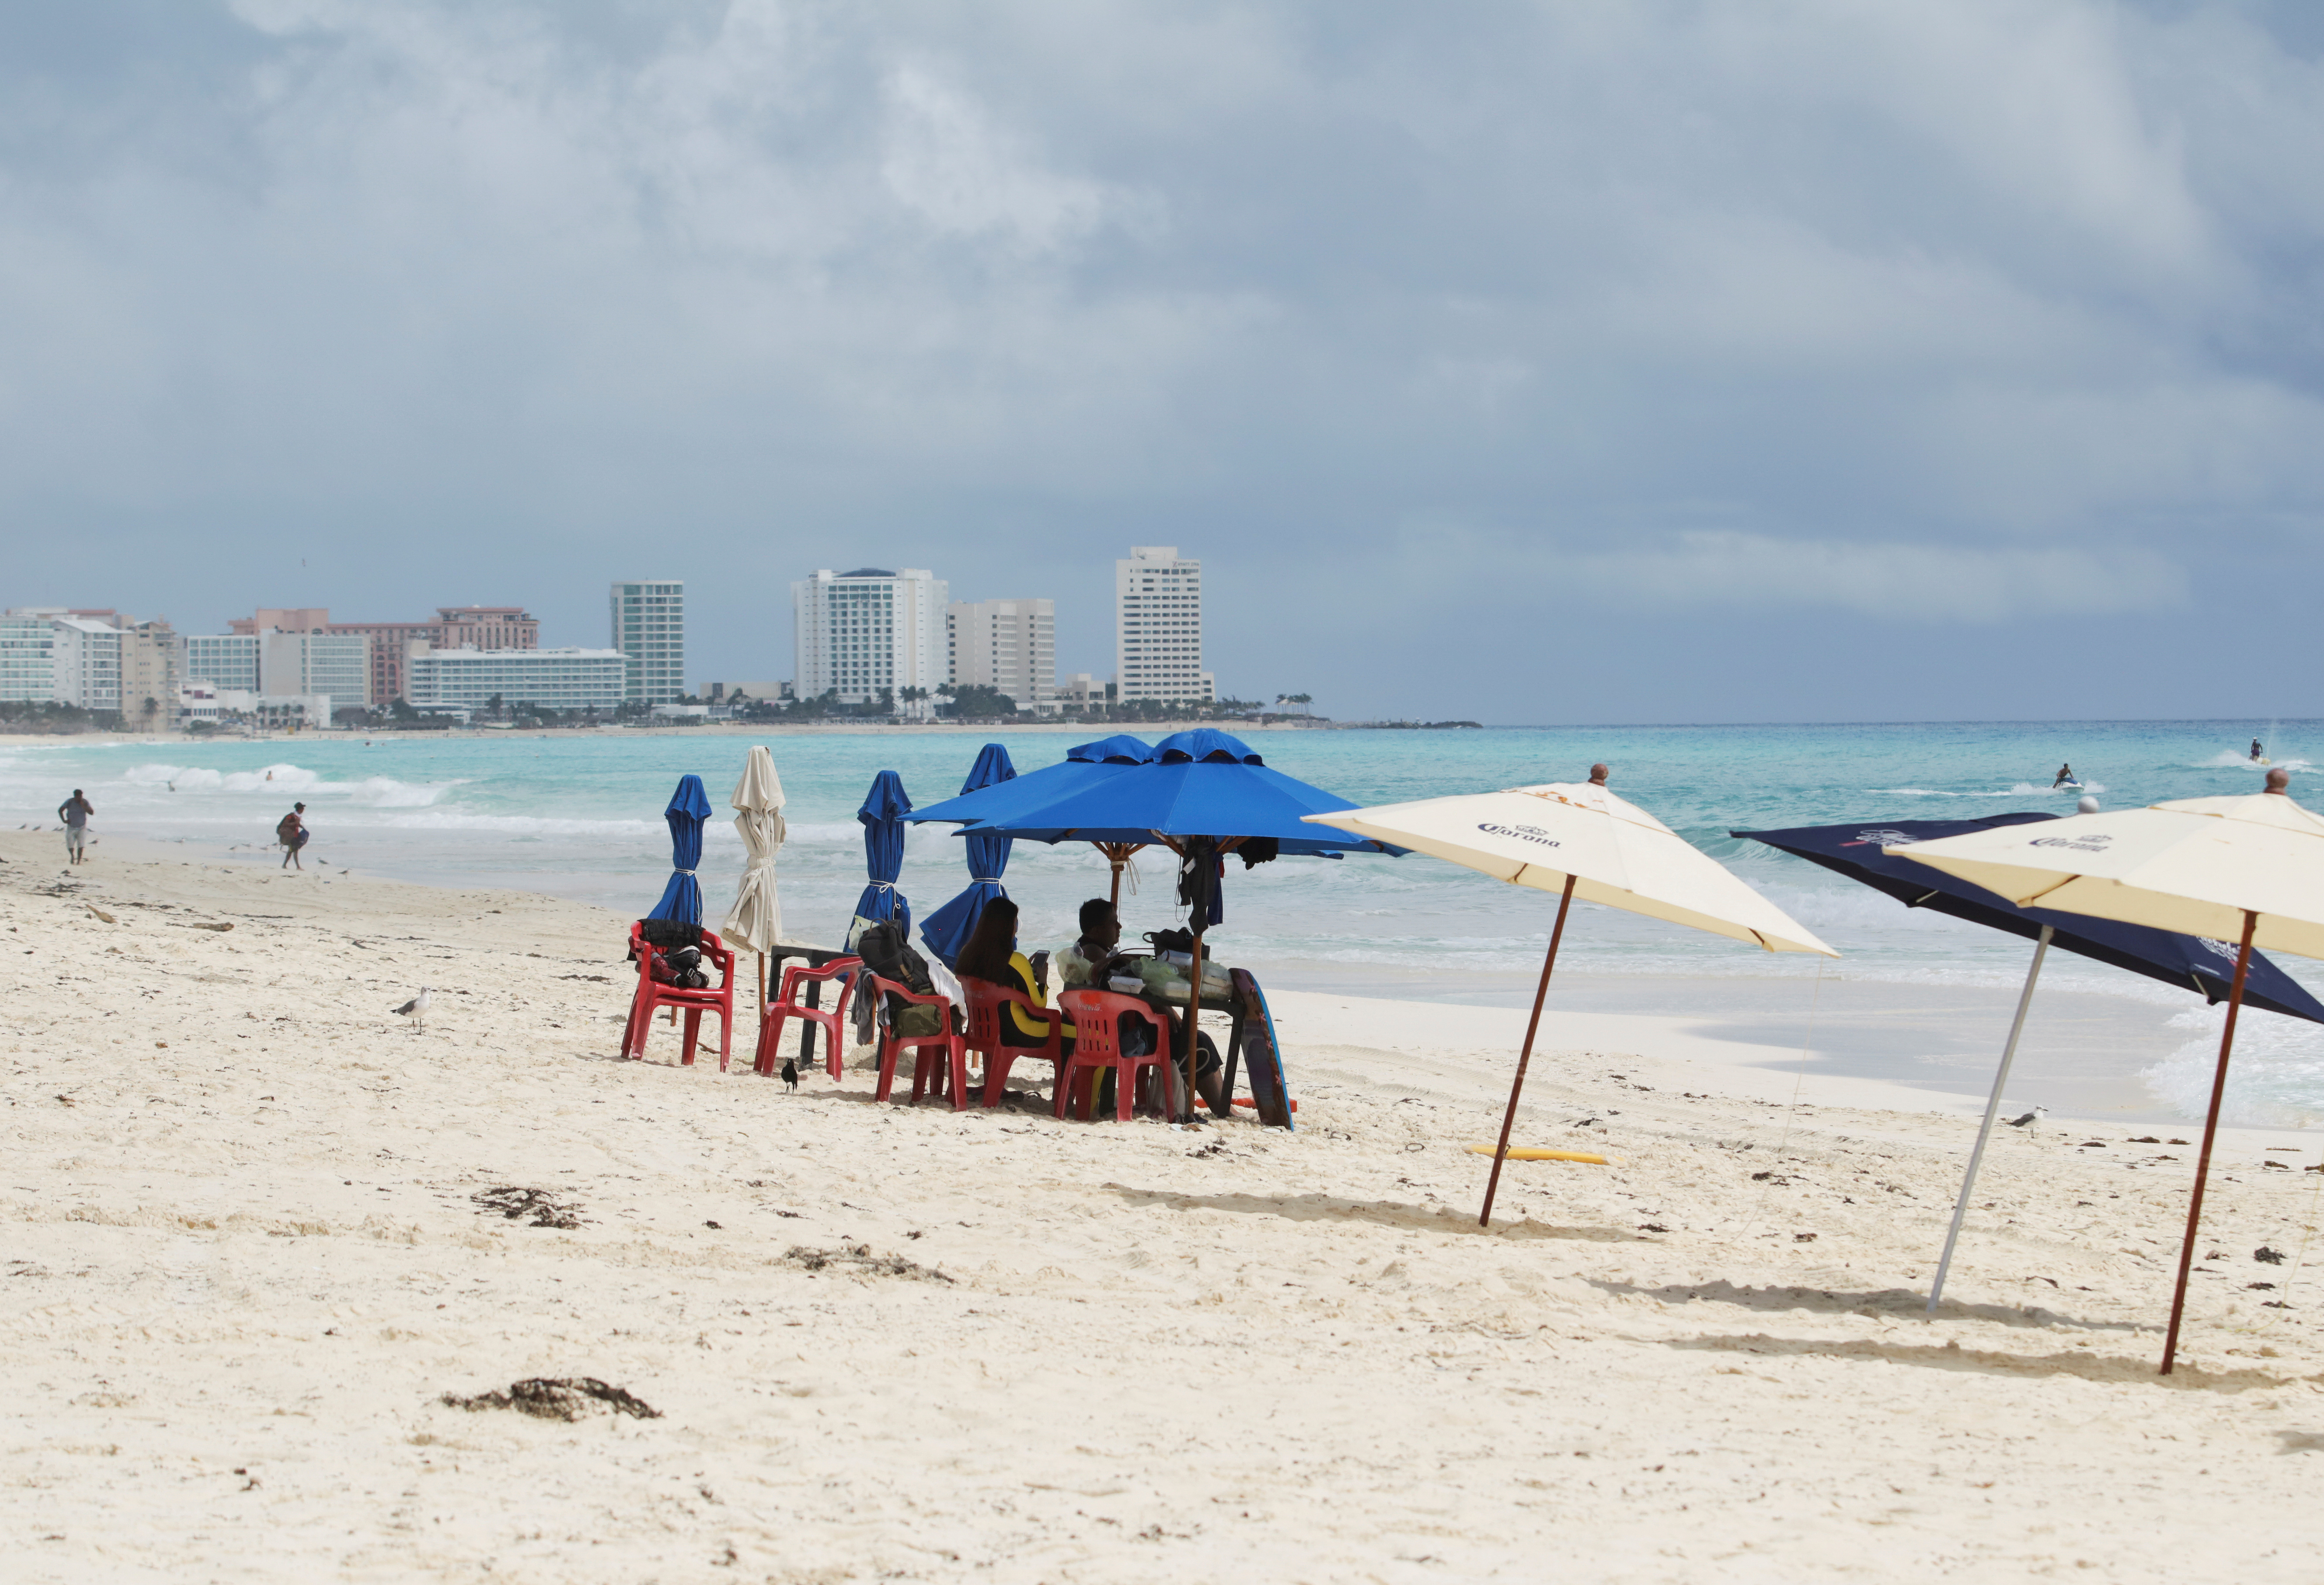 FILE PHOTO: Tourists are seen at a beach in Cancun, Mexico October 6, 2020. REUTERS/Jorge Delgado/File Photo